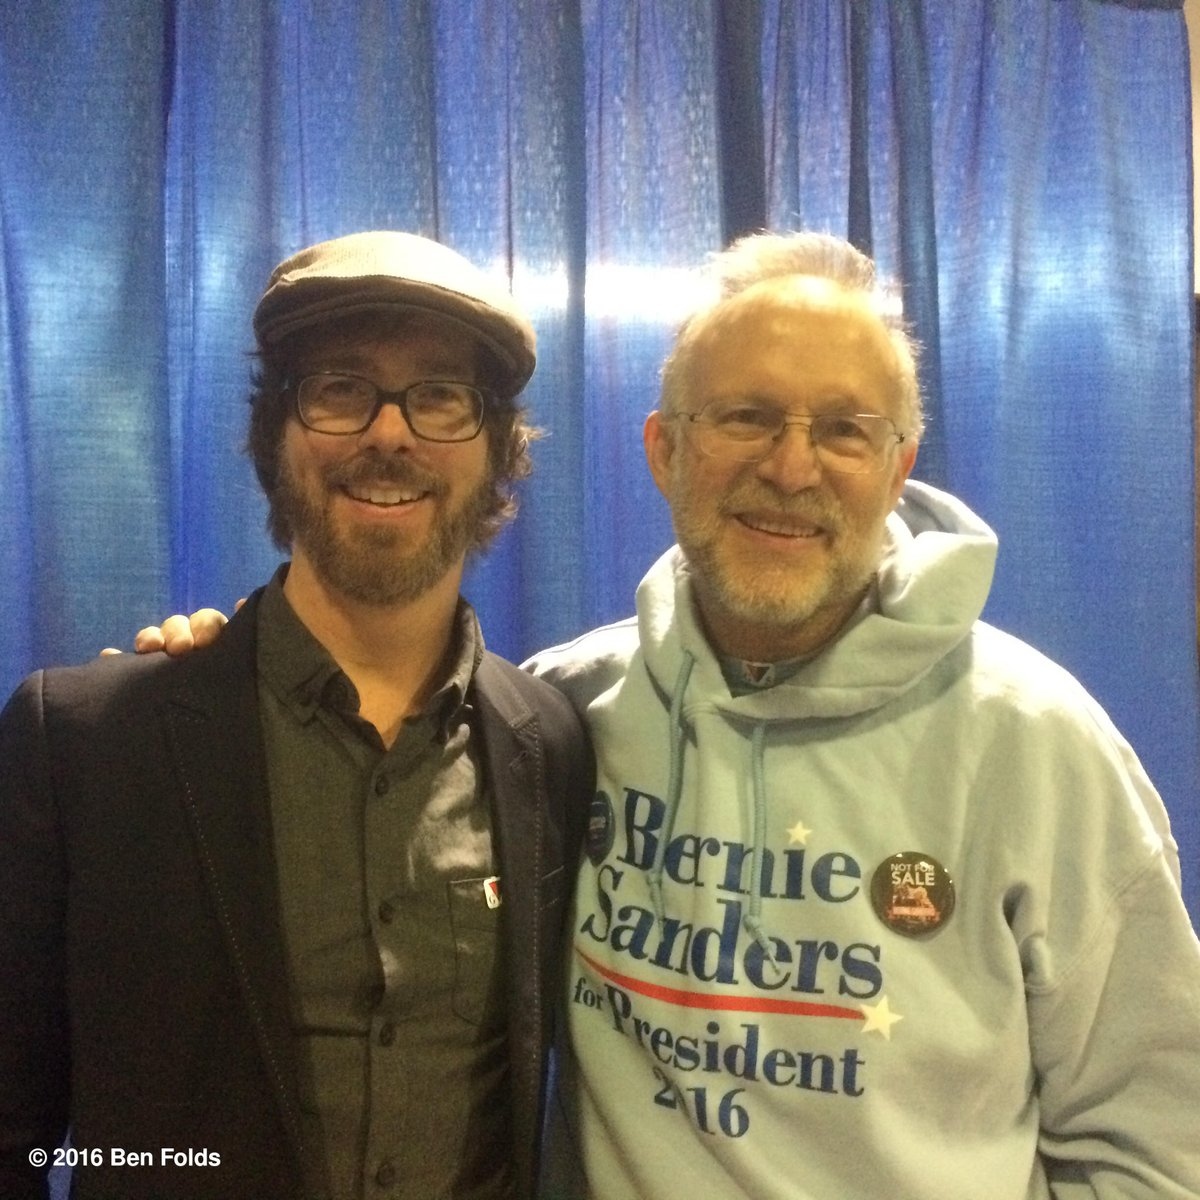 With Jerry Greenfield - Ben&Jerry's (drum roll) Supporting Bernie in Vermont #feelthebern #supertuesday https://t.co/WA21IhbtWQ